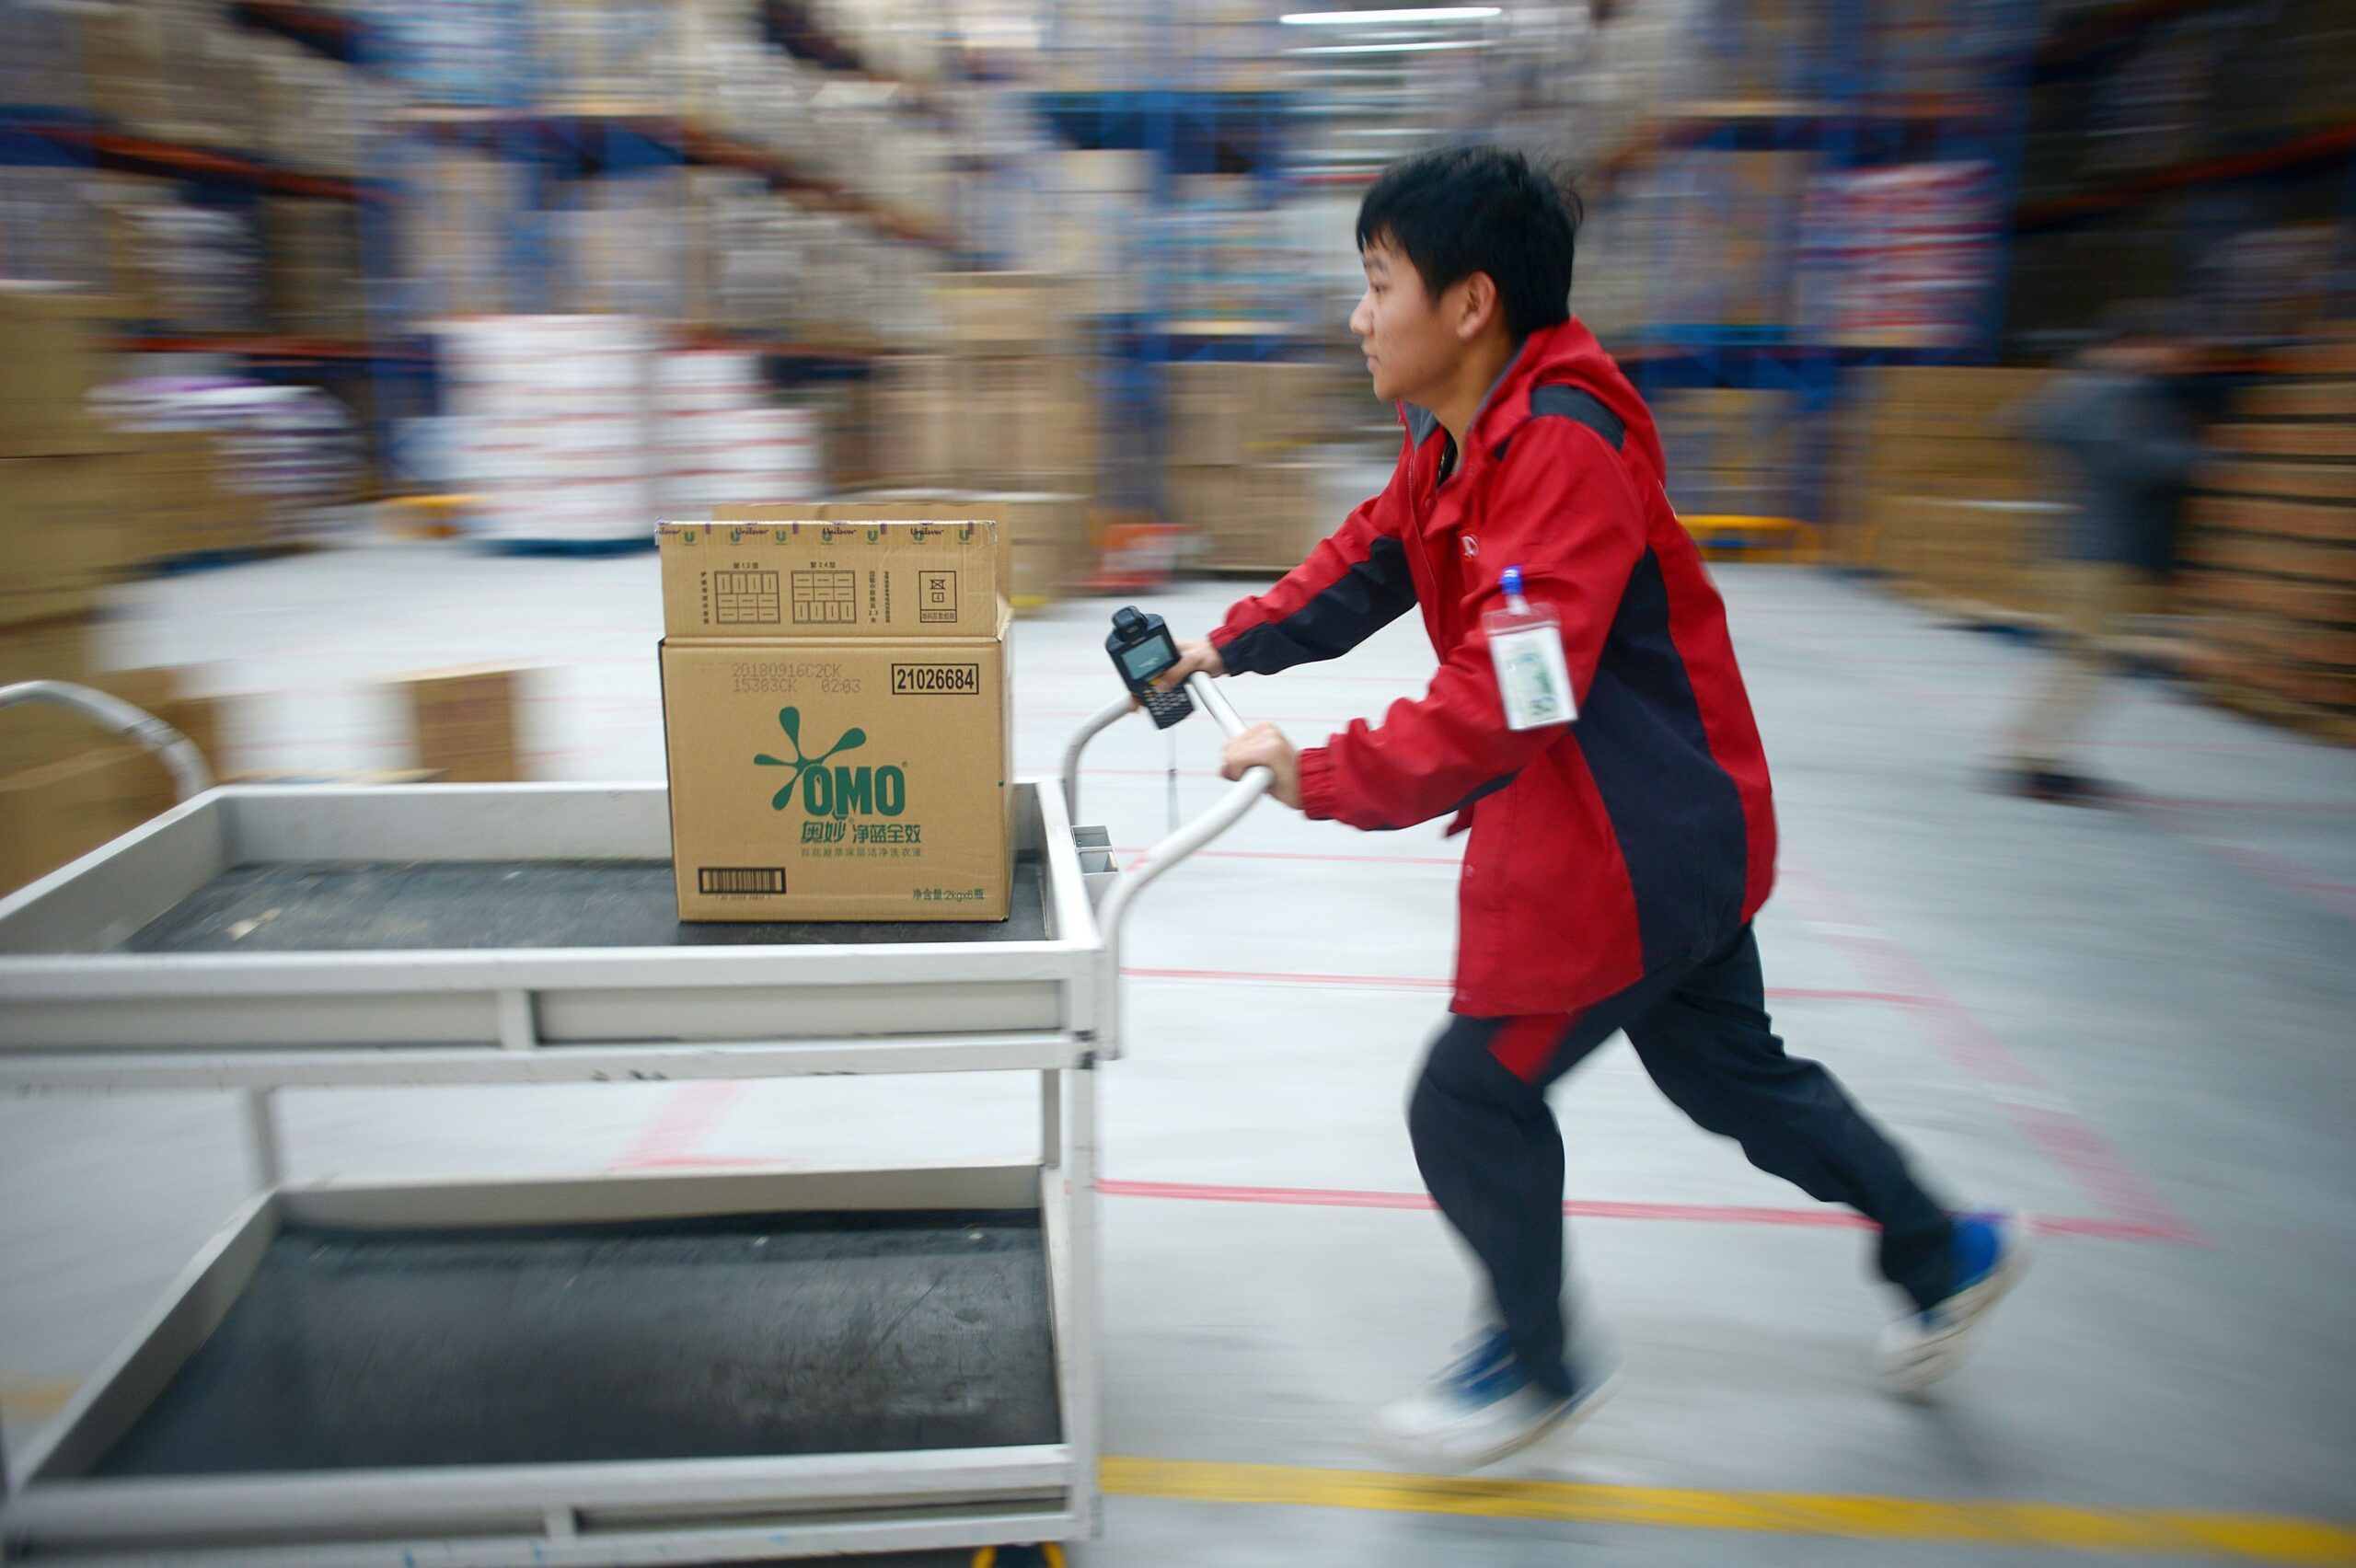 Gig economy workers of China, unite! Didi and JD to allow labour unions